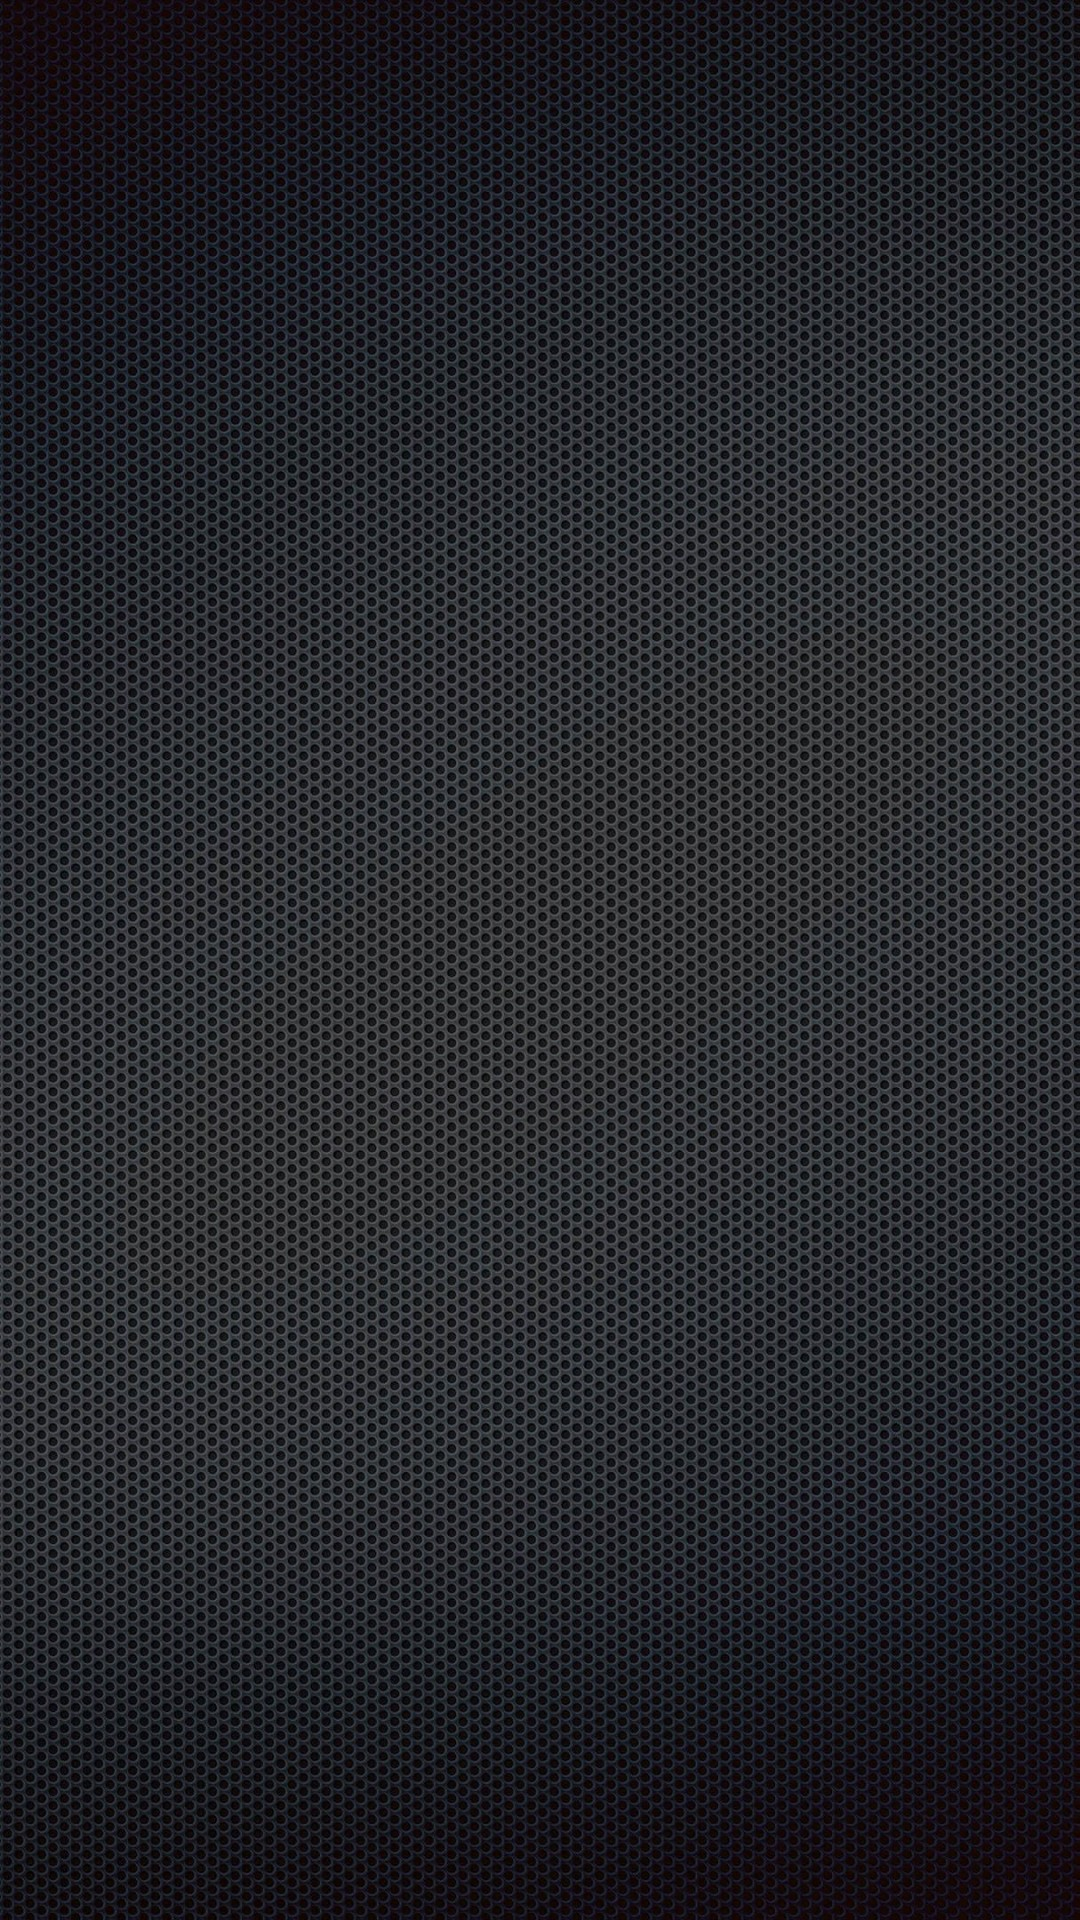 Black Grill Texture Wallpaper for Google Nexus 5X